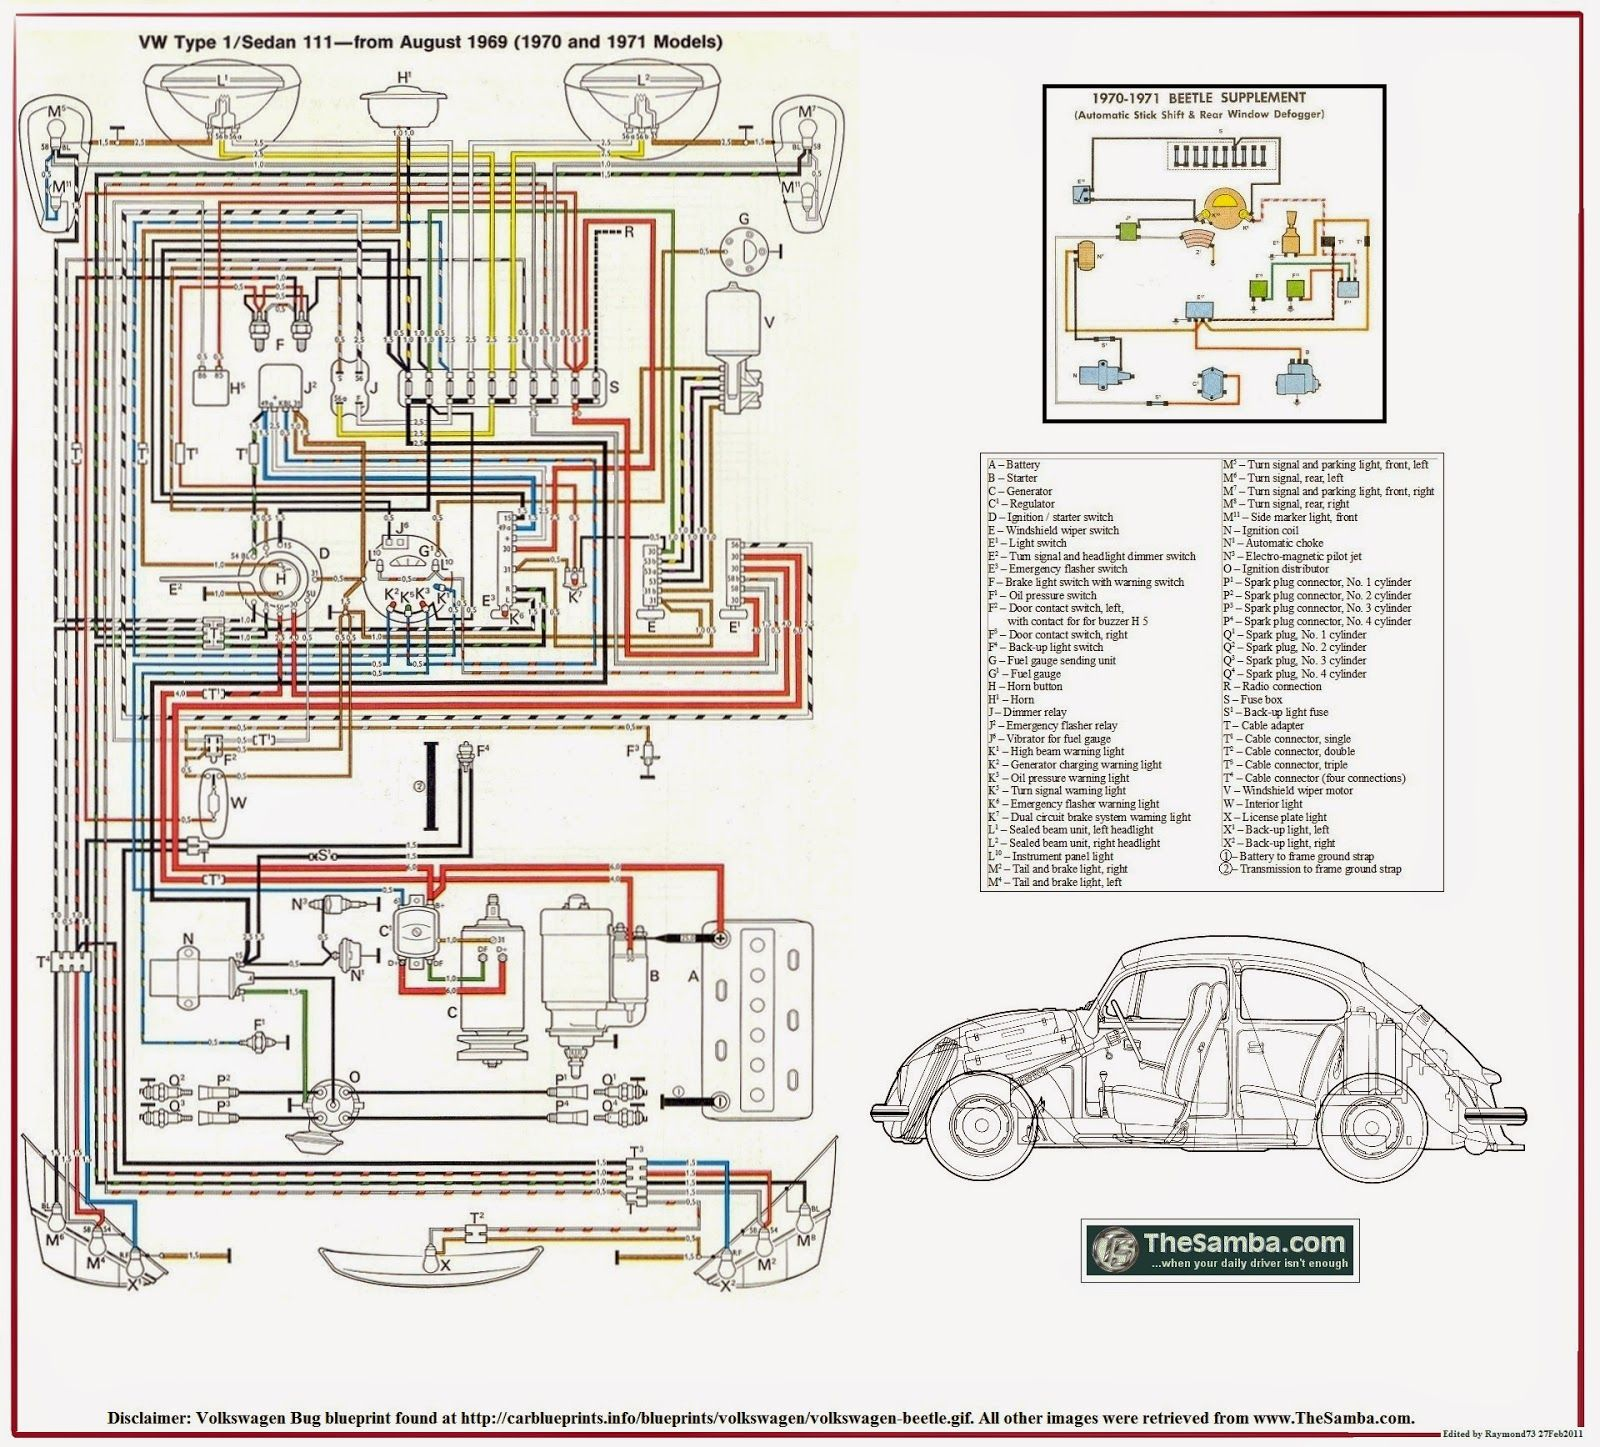 c42f7e50c6cd2df691326f8c1e5c6e97 urbi et orbi my bucket list journals volkswagen (vw) beetle 1998 Dodge Ram 2500 Wiring Diagram at webbmarketing.co